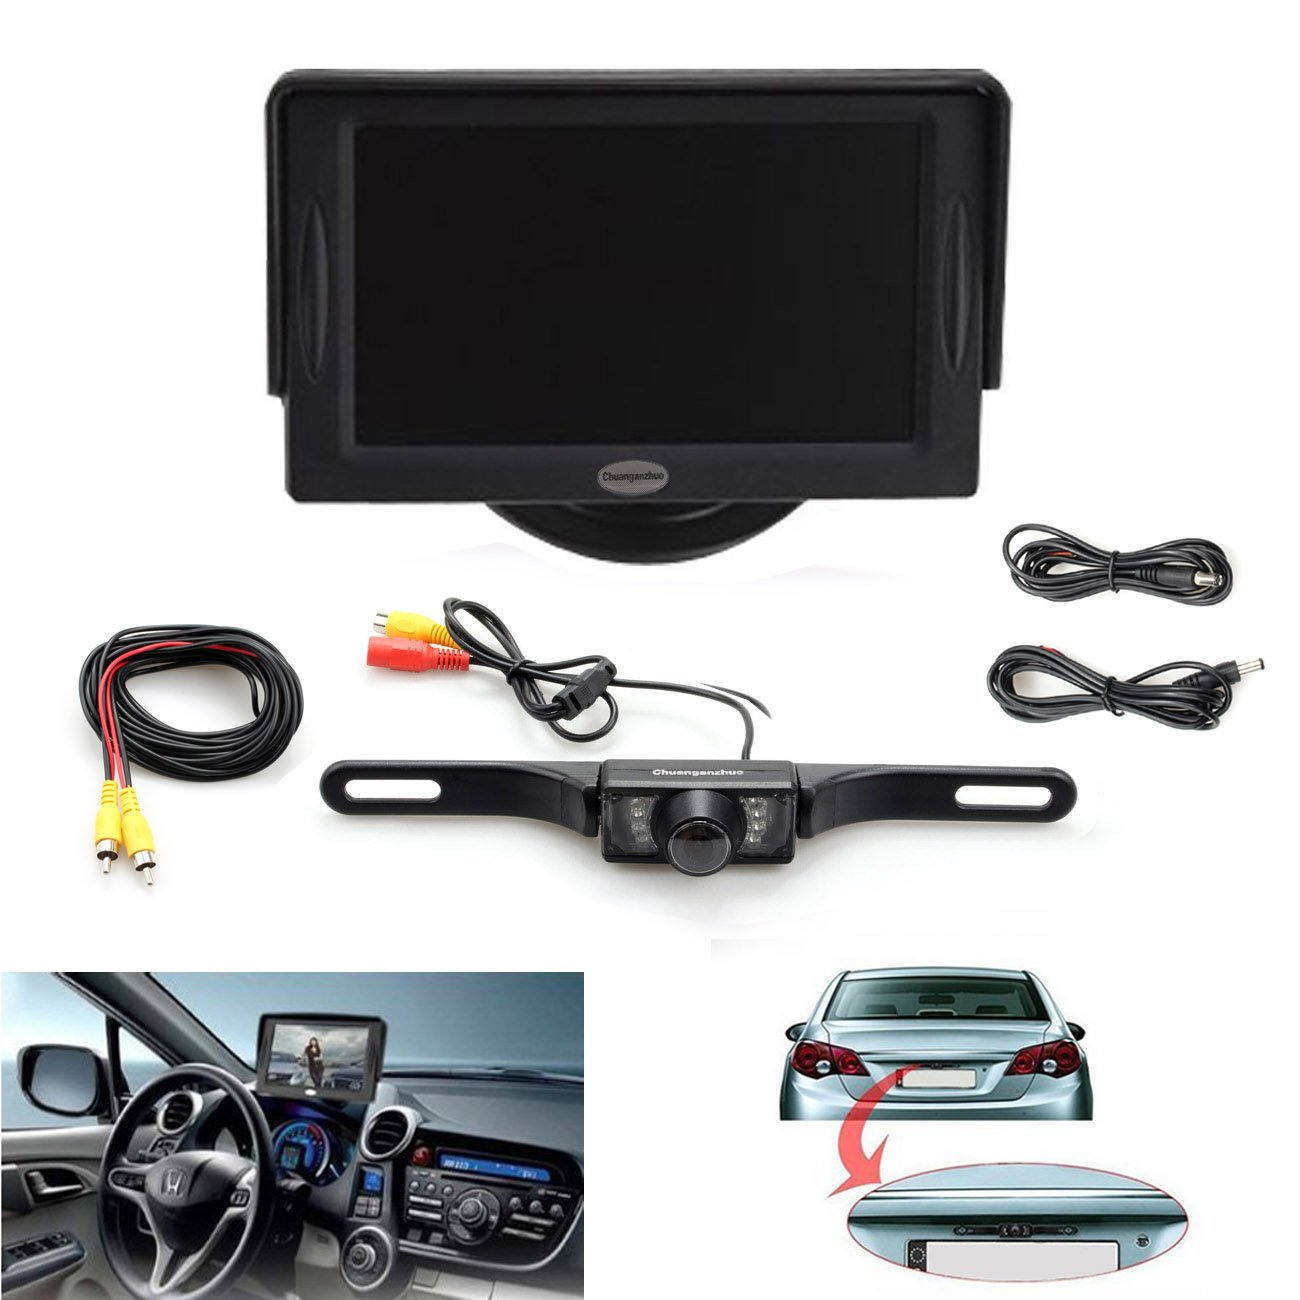 Backup Camera and Monitor Kit For Car,Universal Waterproof Rear-view License Plate Car Rear Backup Parking Camera + 4.3 TFT LCD Rear View Monitor Screen 4 3 tft lcd car rear view stand security monitor and camera kit black